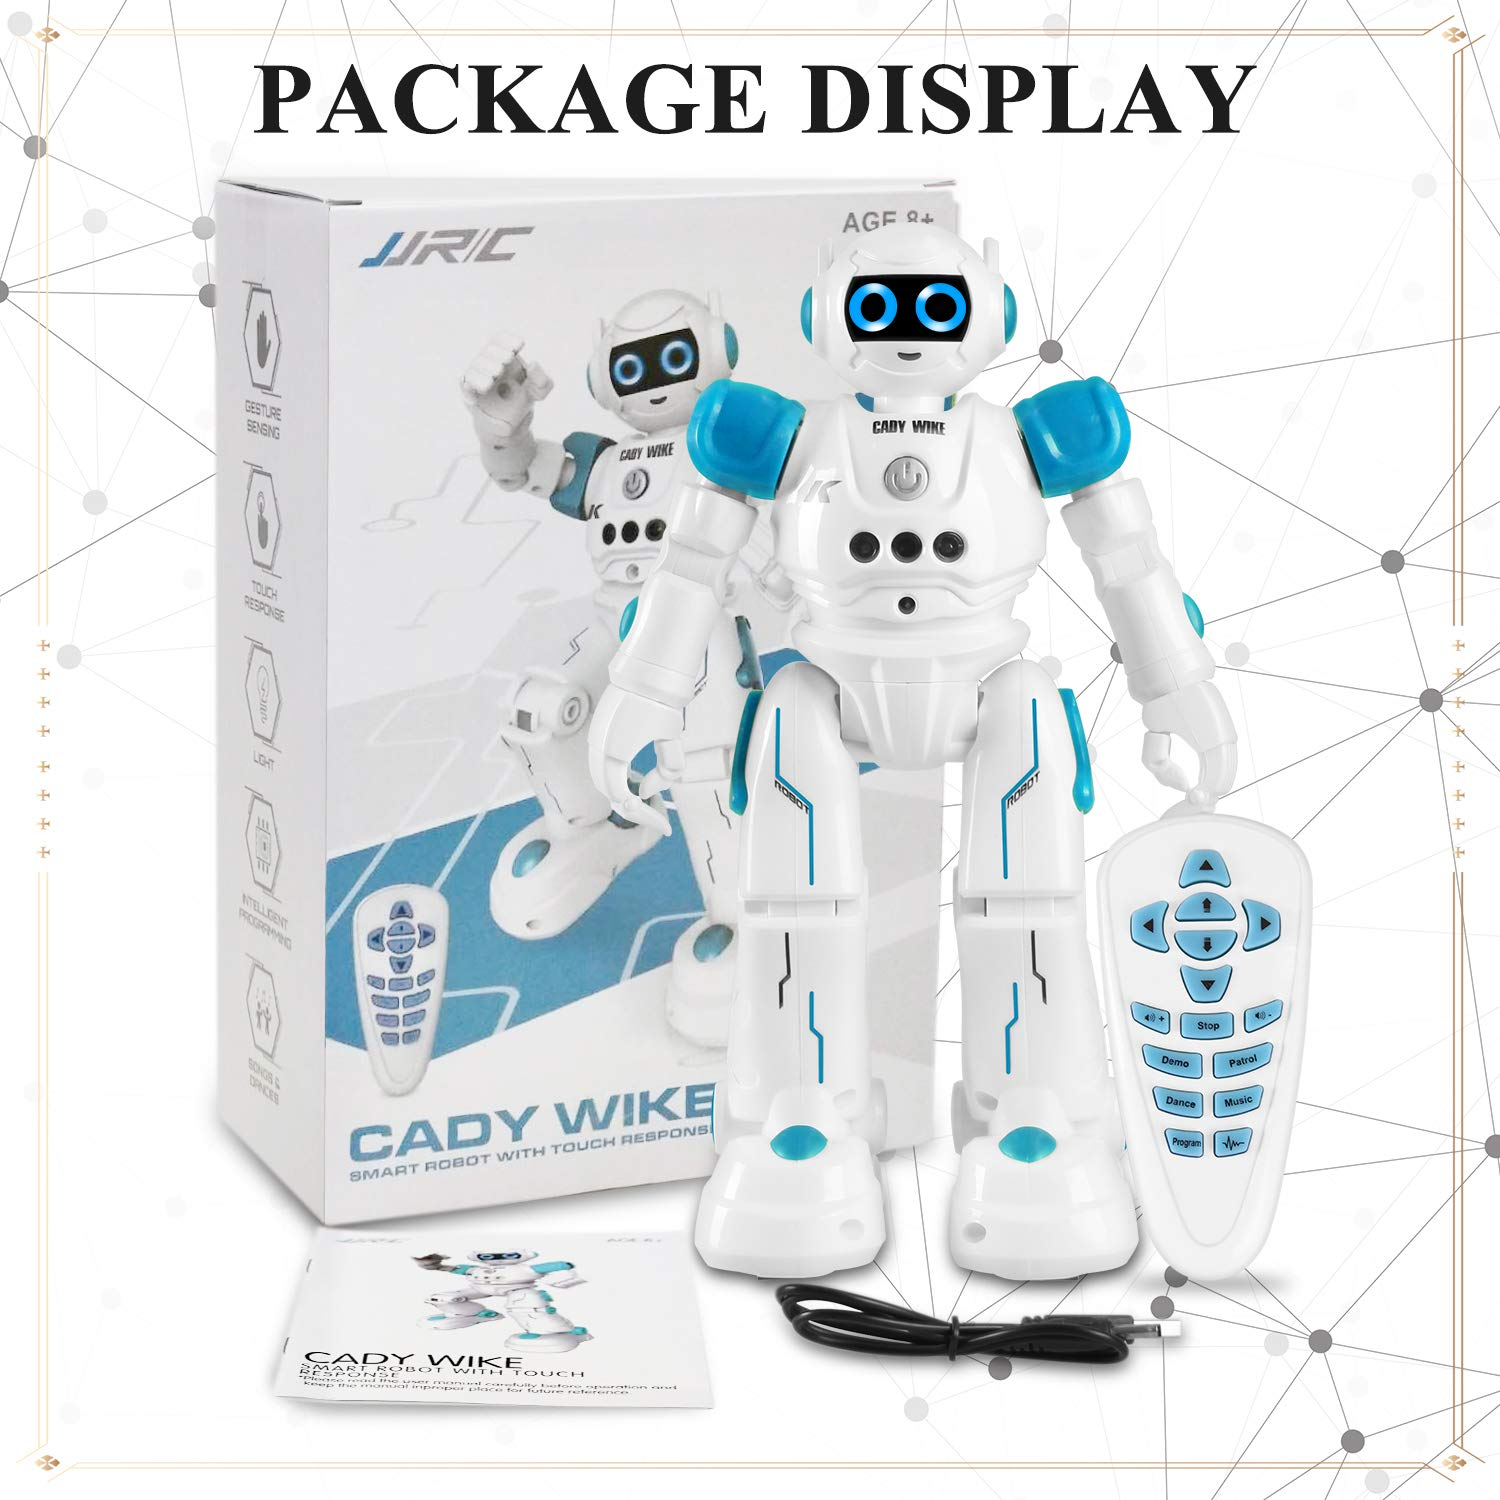 IHBUDS Robot Toy for Kids, Smart Robot Kit with Remote Control & Gesture Control, Perfect Robotics Gifts for Boys Girls Learning Programmable Walking Dancing Singing (Blue) by IHBUDS (Image #7)